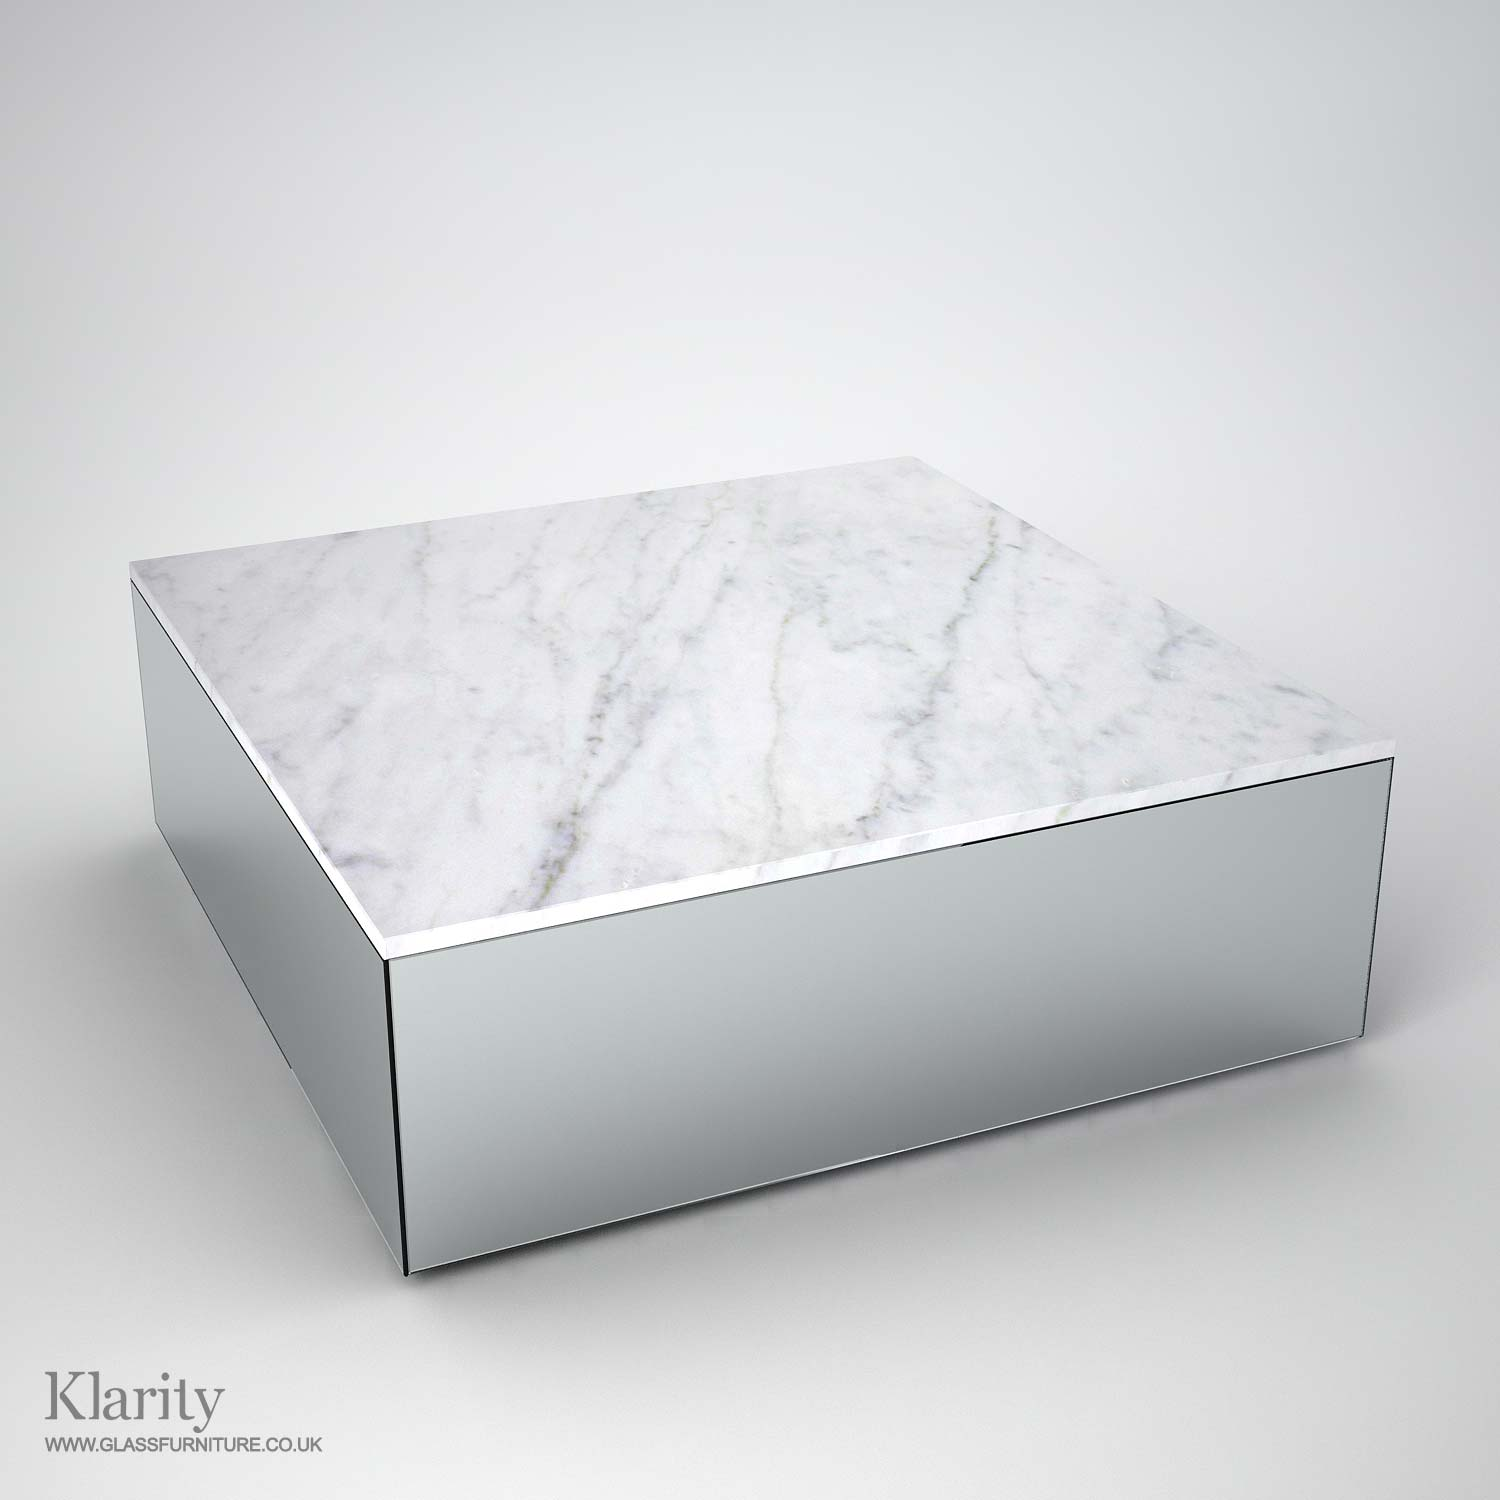 Mirror And Marble Coffee Table By Mirrorbox Klarity Glass Furniture